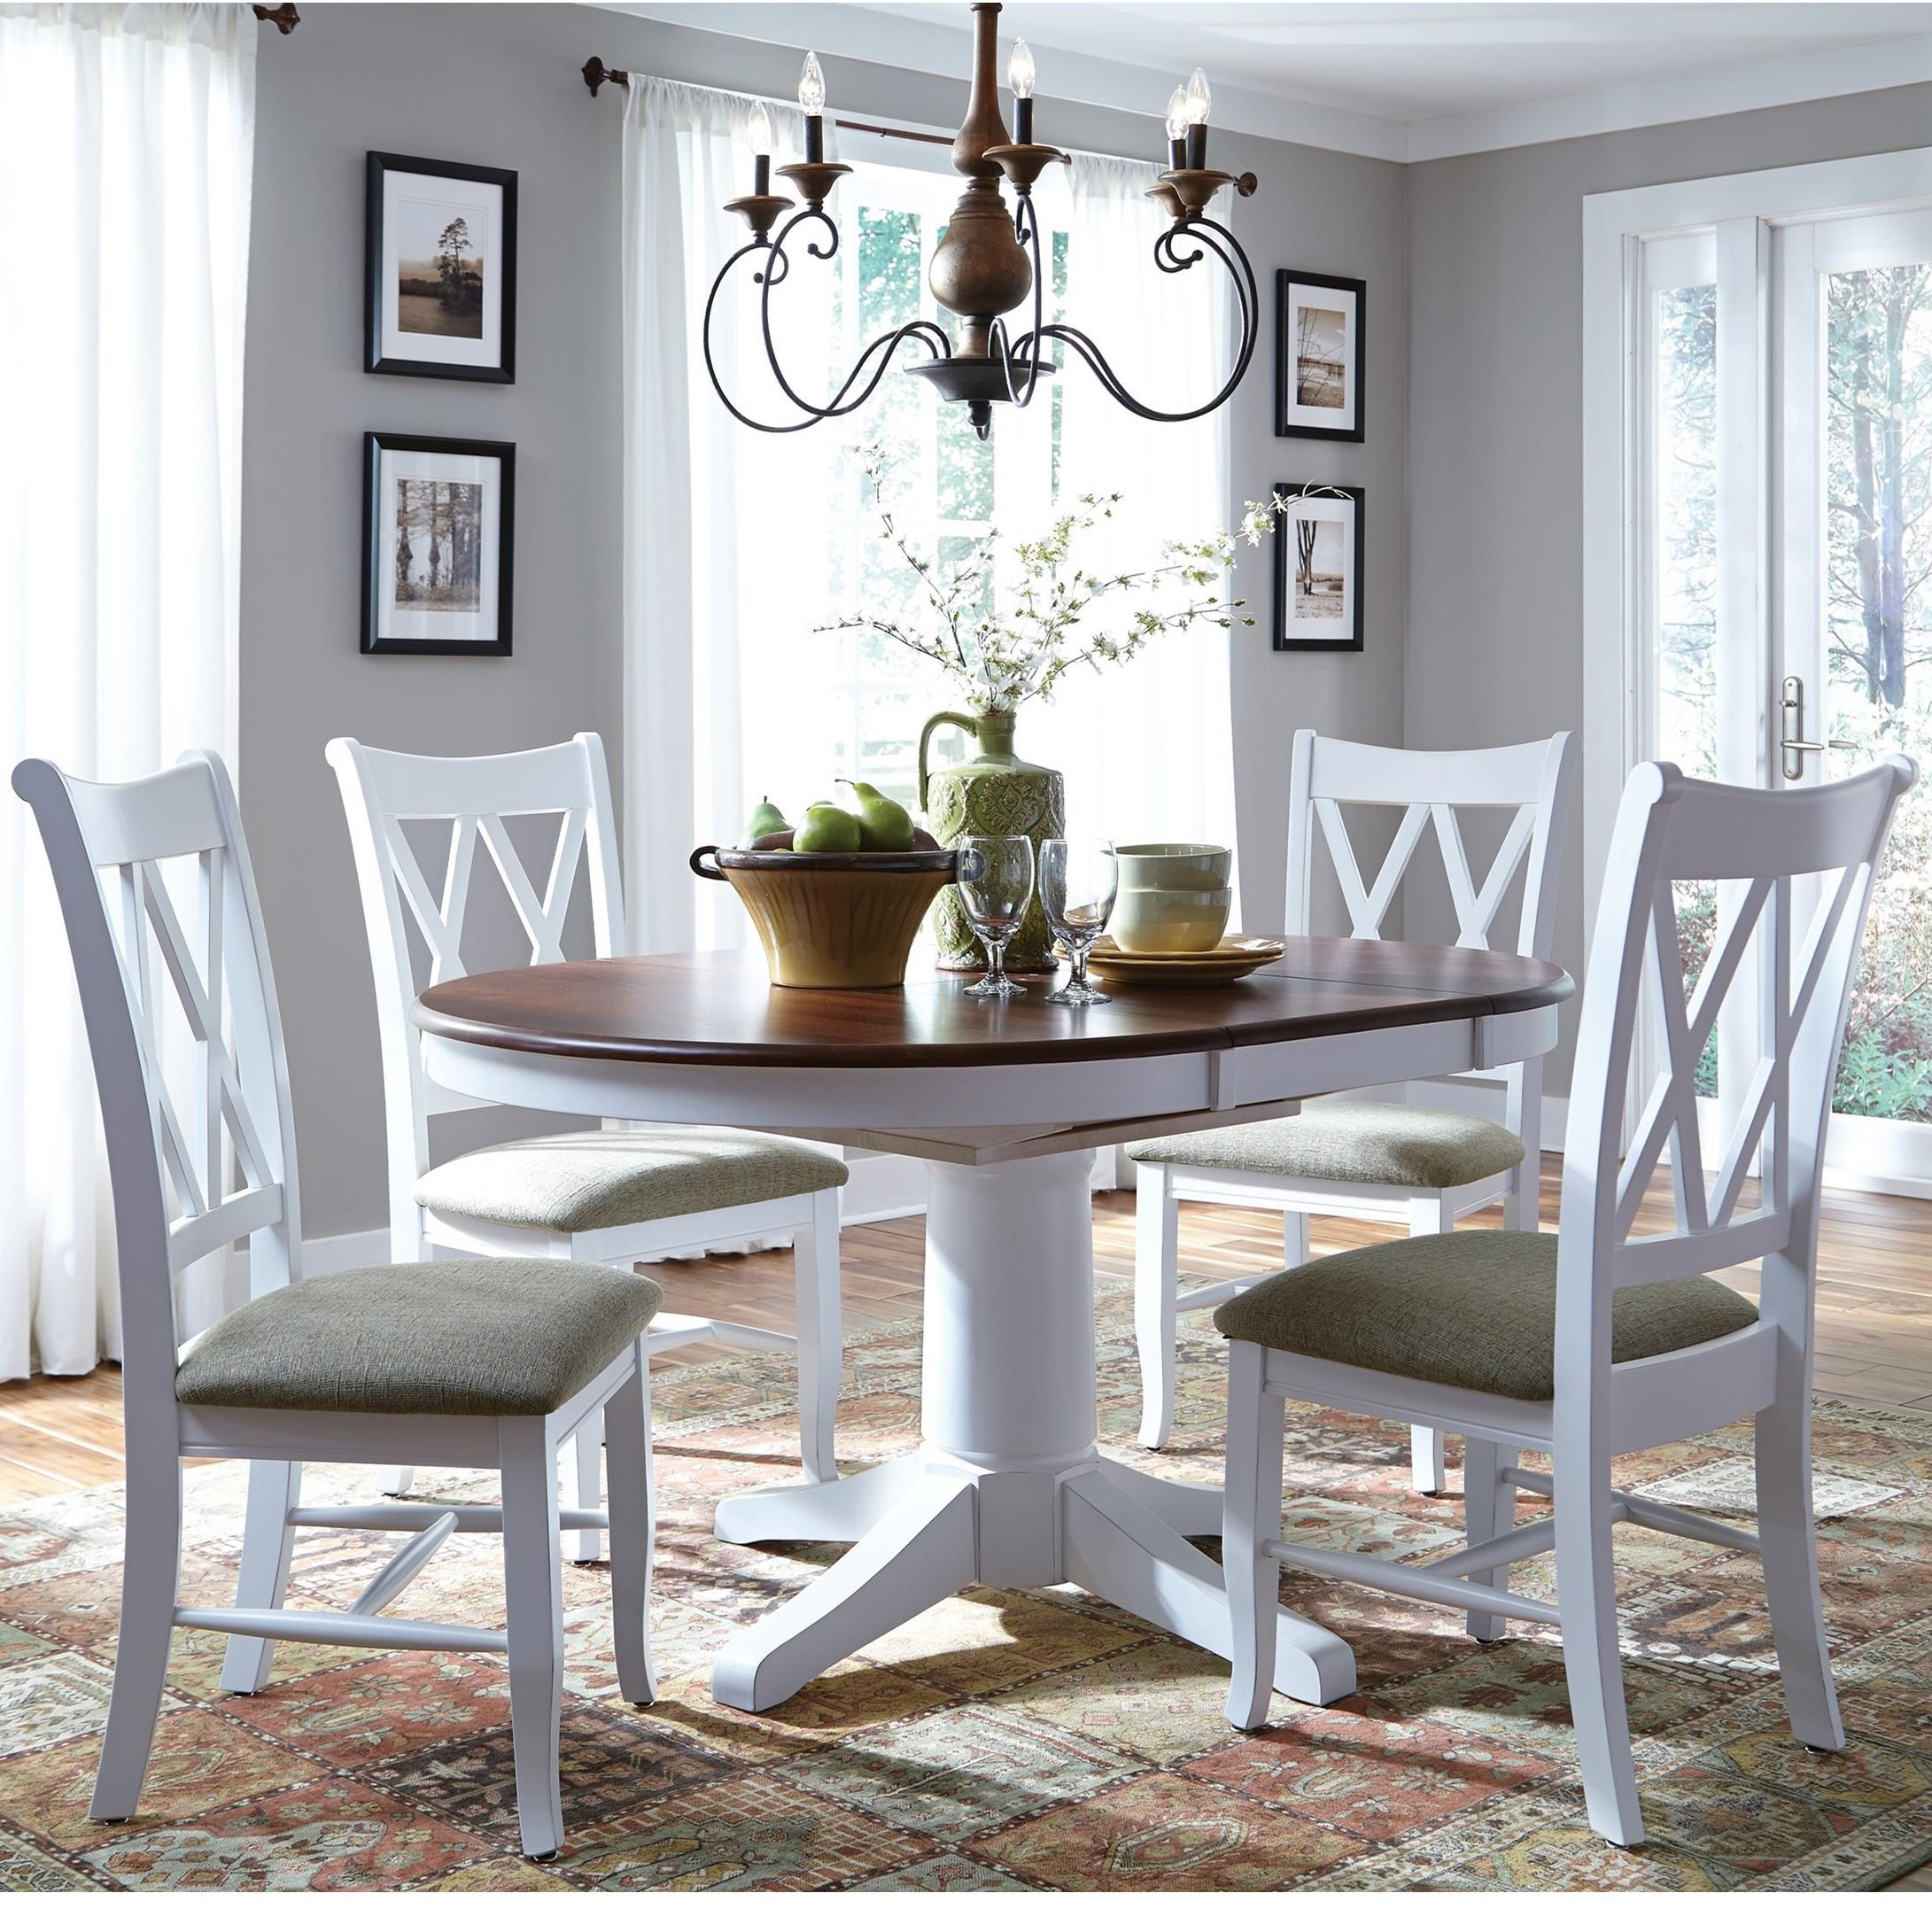 John Thomas Select Dining 5 Piece Dining Set With Double X Back